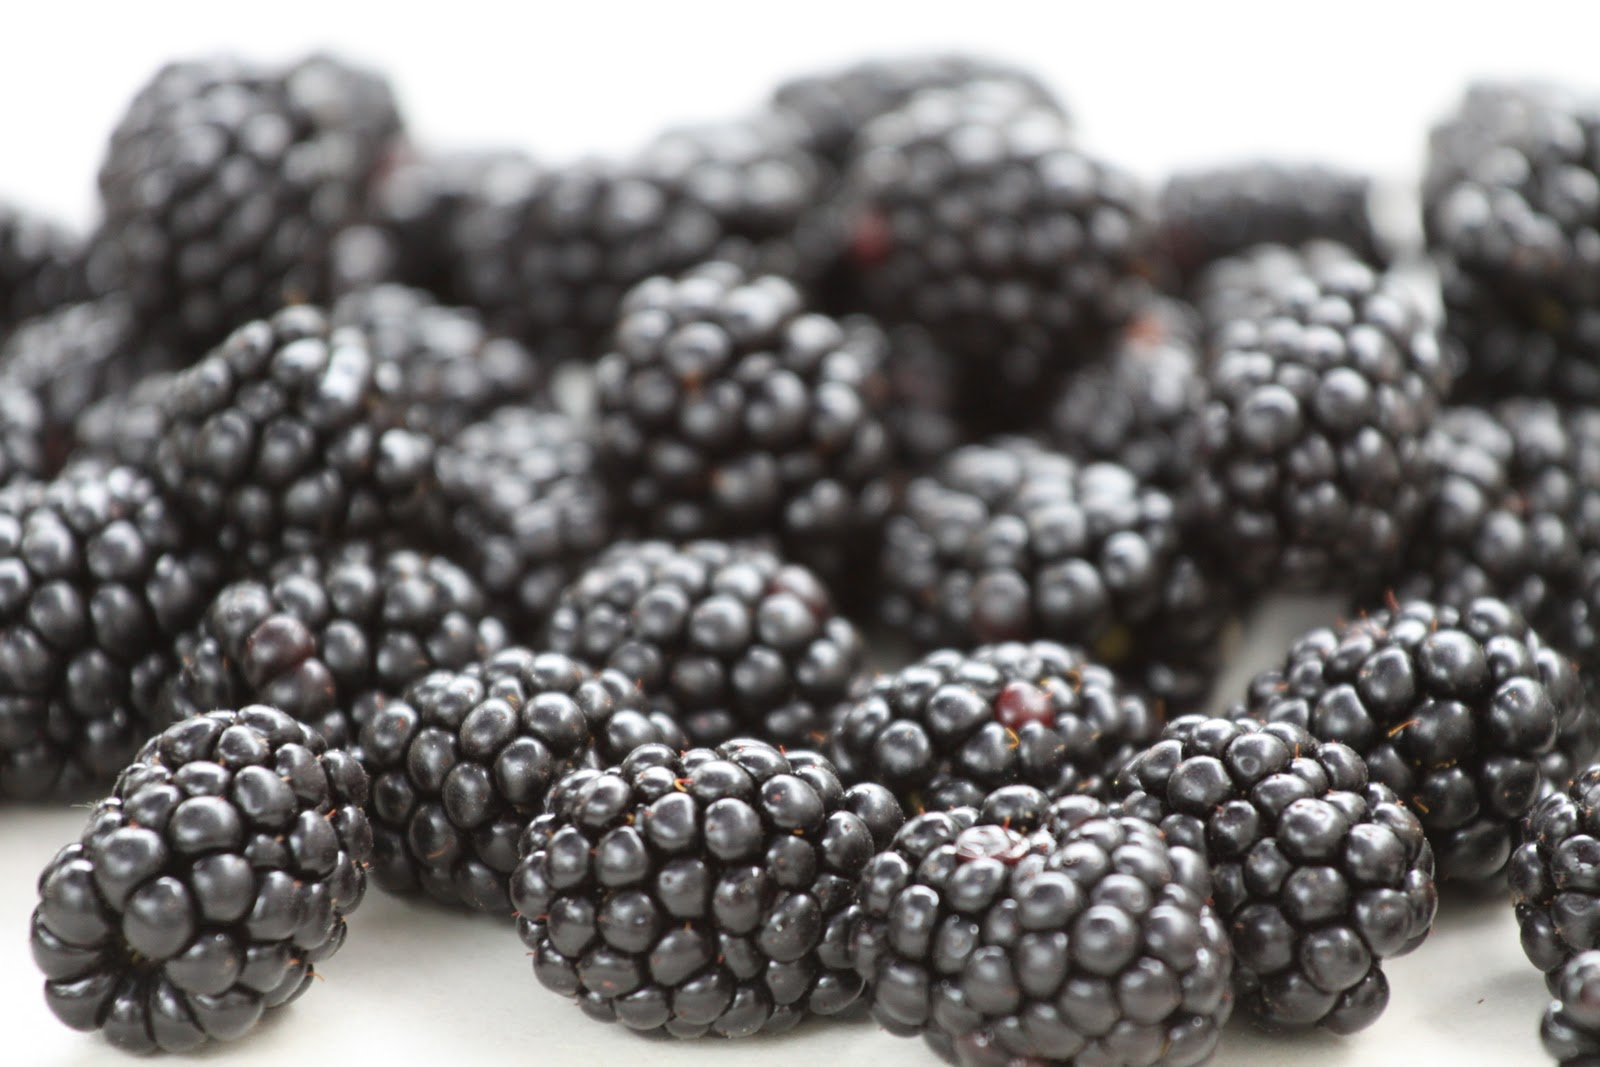 How To Make Blackberry Scrub